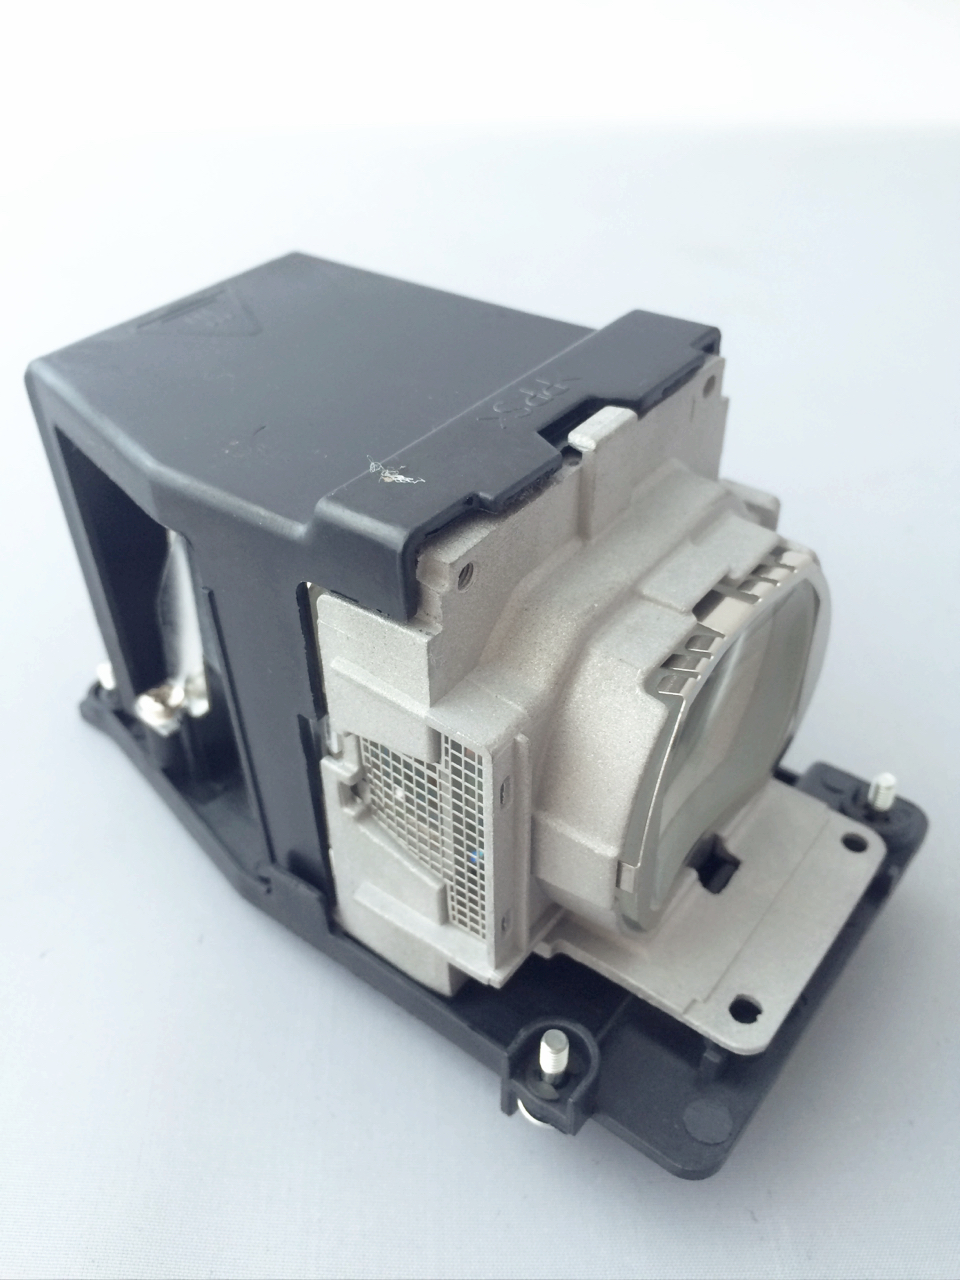 SHENG Free Shipping Projector Lamp TLPLW11 For TDP-T100/TDP-T99/TDP-TW100/TLP-T100 With Housing/case